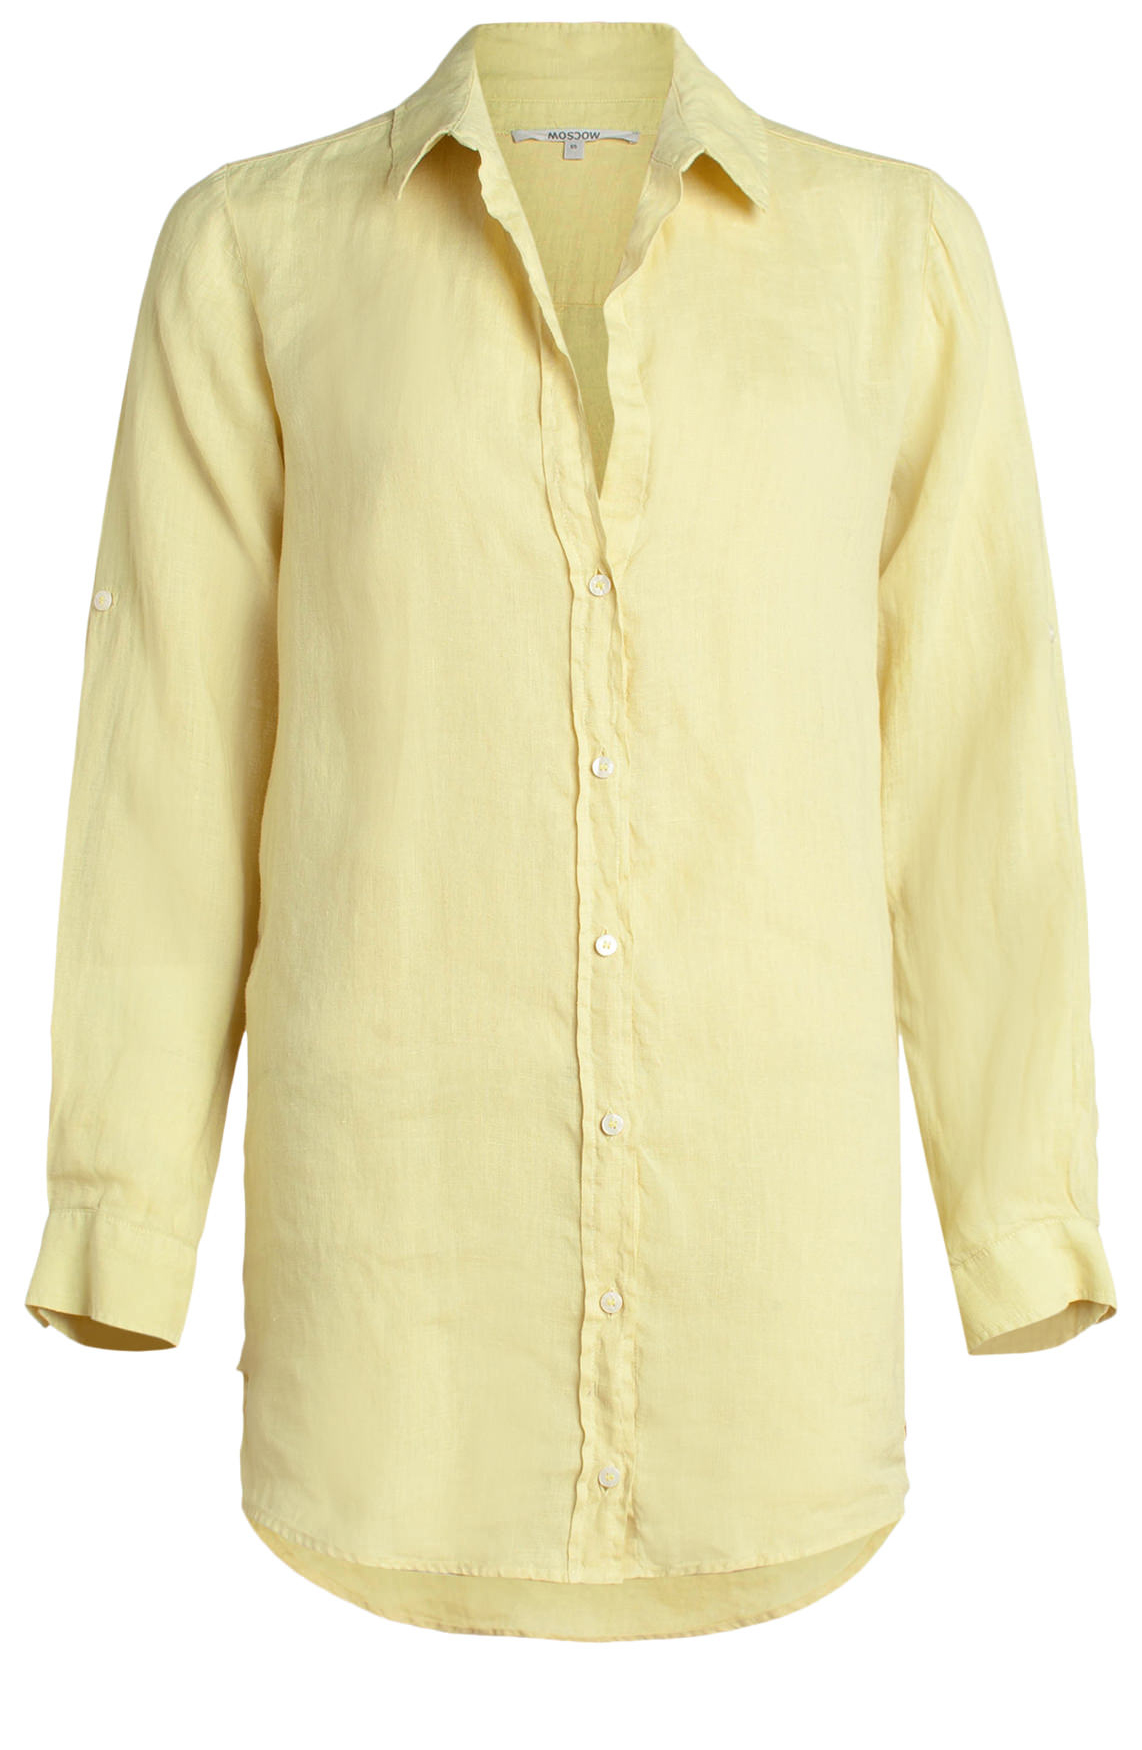 Moscow Dames Linen blouse geel